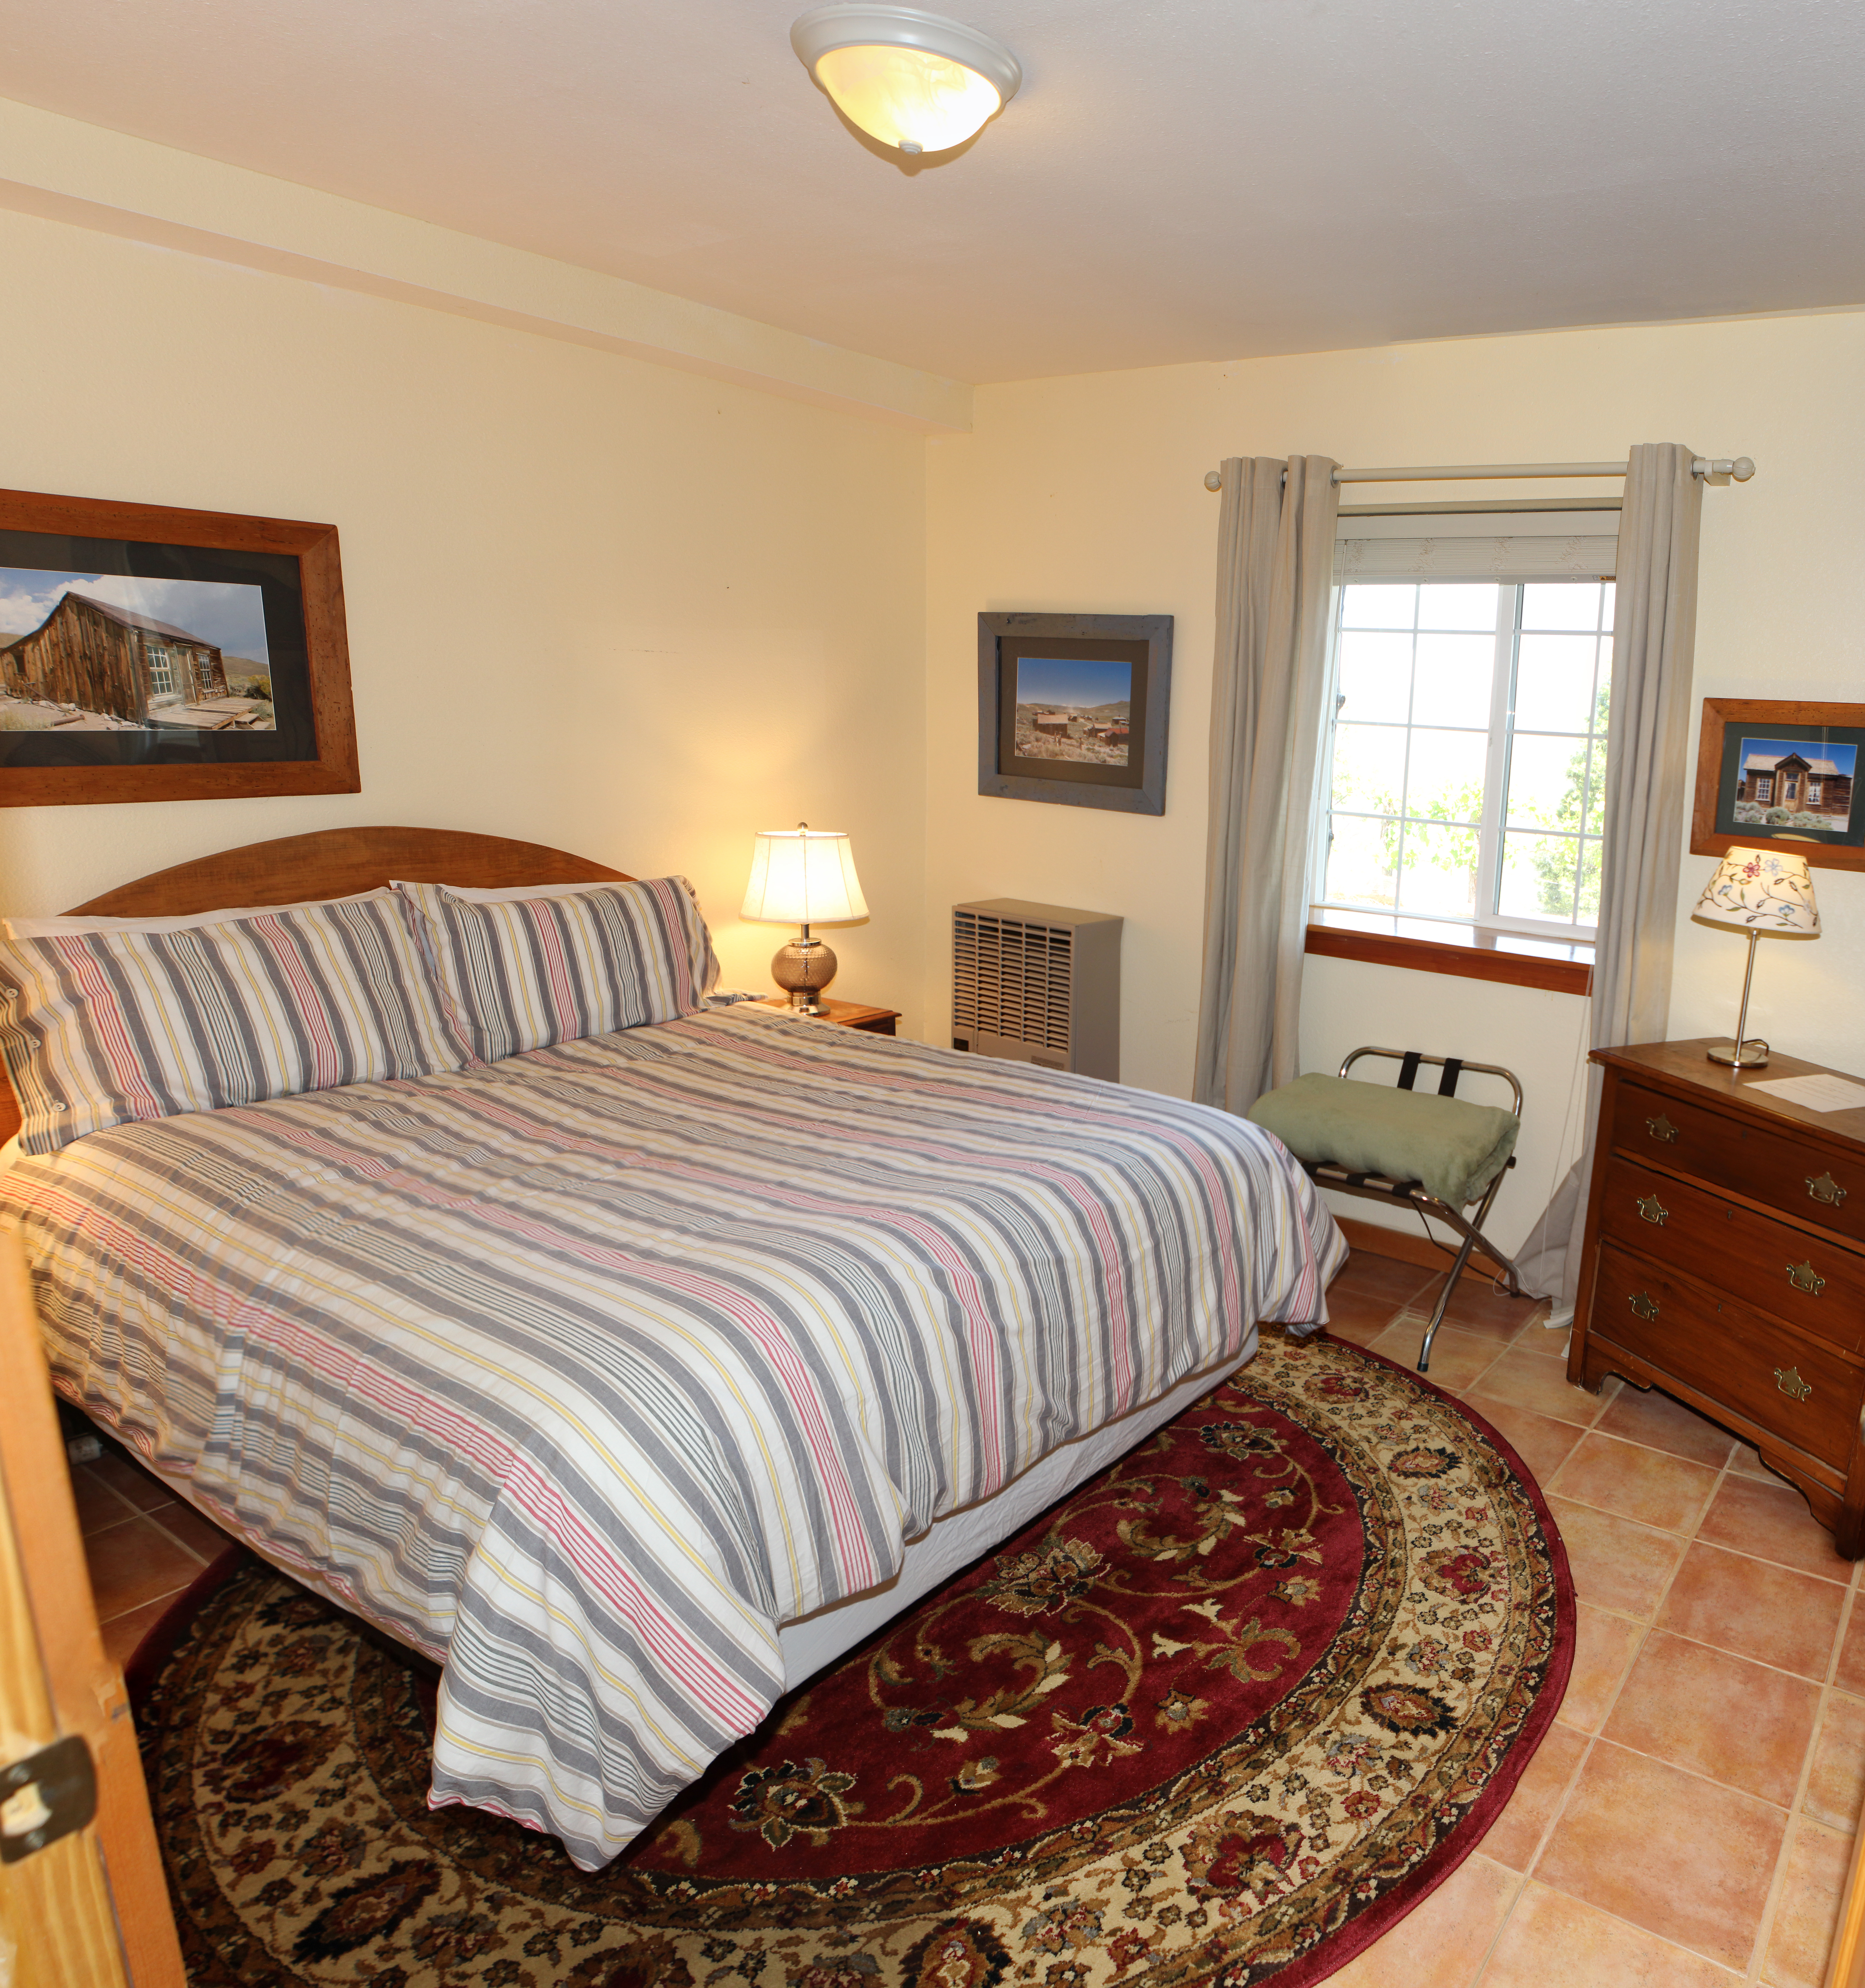 Bodie is on the lower level of the Lodge with sunrise and mountain views. It has a Queen bed with room for a roll-away bed. The large private bathroom is across the hall. There is a flat screen Direct TV and individual climate control.